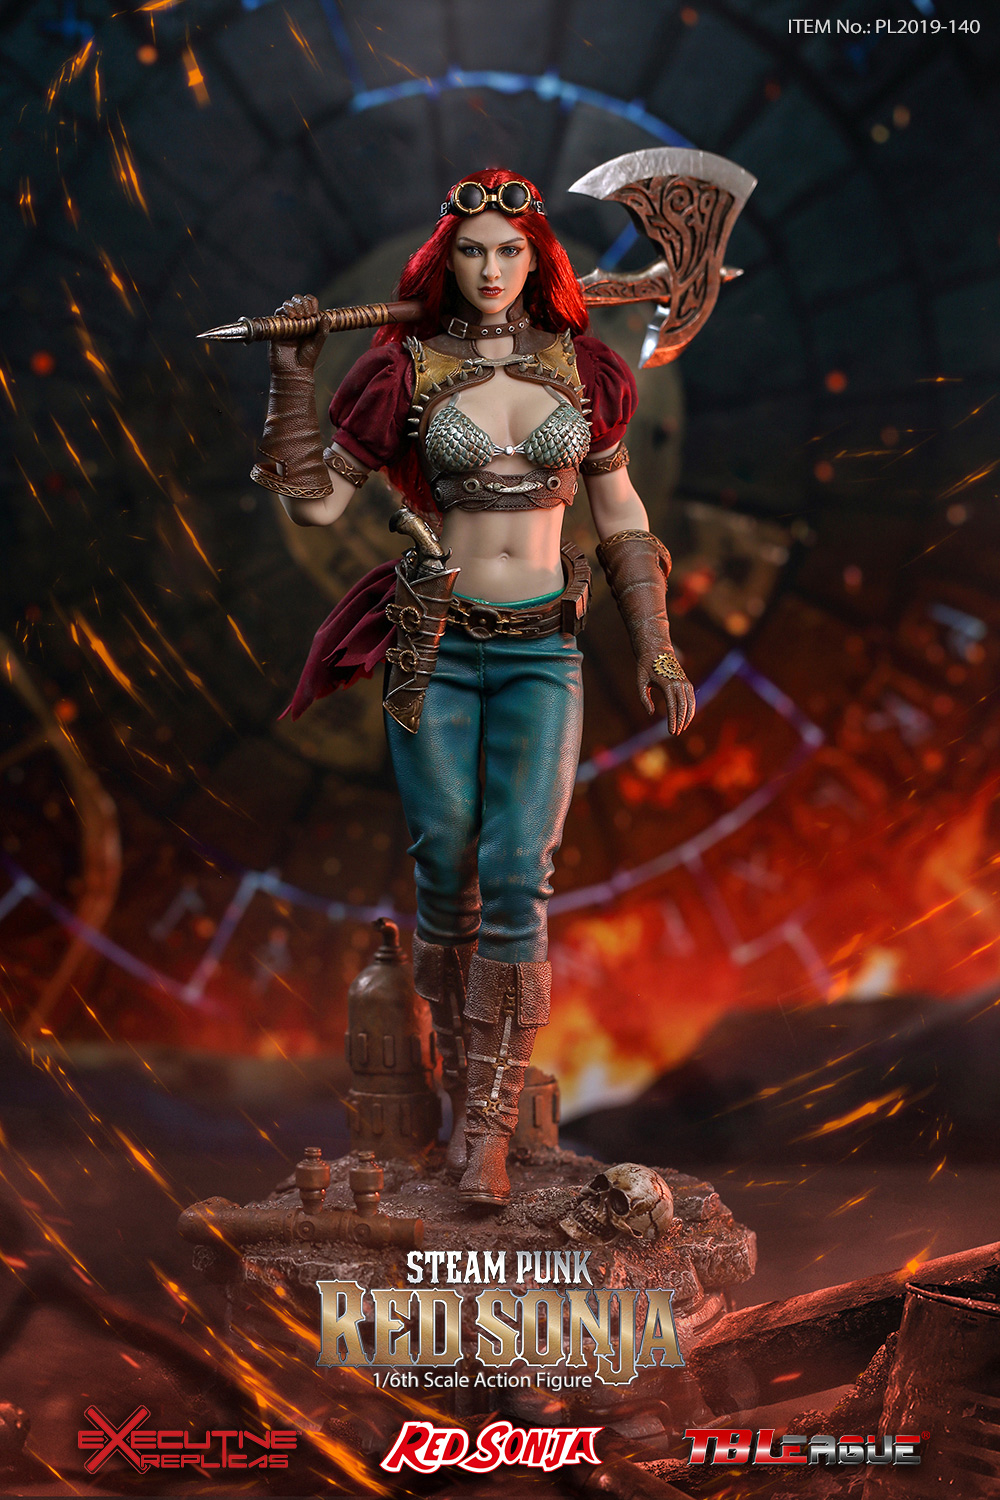 steampunk - NEW PRODUCT: TBLeague: 1/6 Steam Punk - Red Sonja / Queen Excalibur [punk version] PL2019-140-A/B 20192210